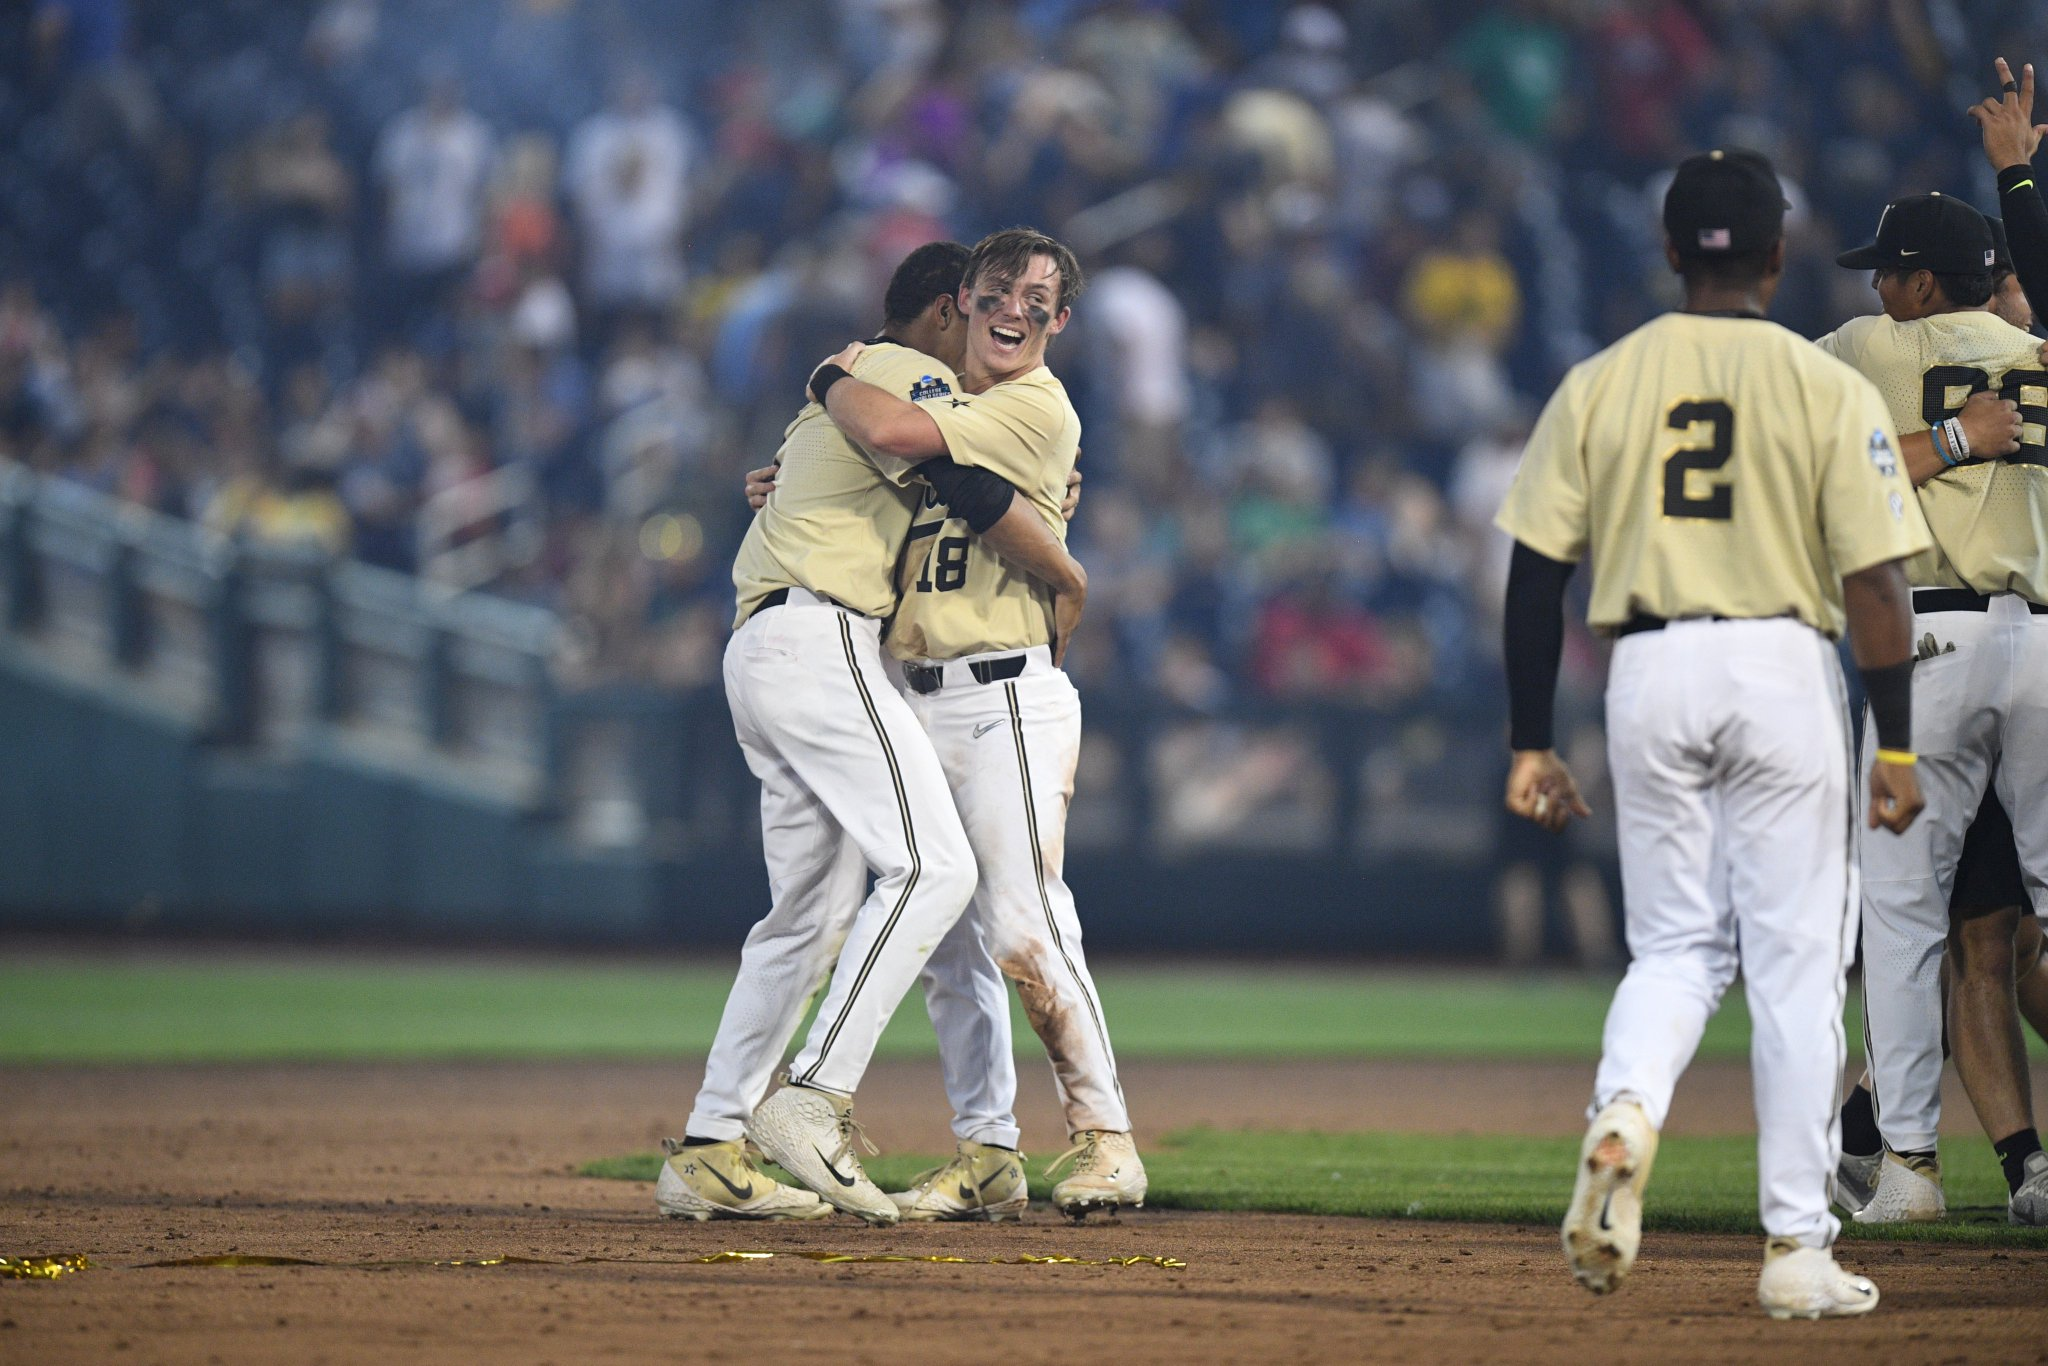 Family. Forever. ❤️  #CWS | @VandyBoys https://t.co/ArYhx90B7U